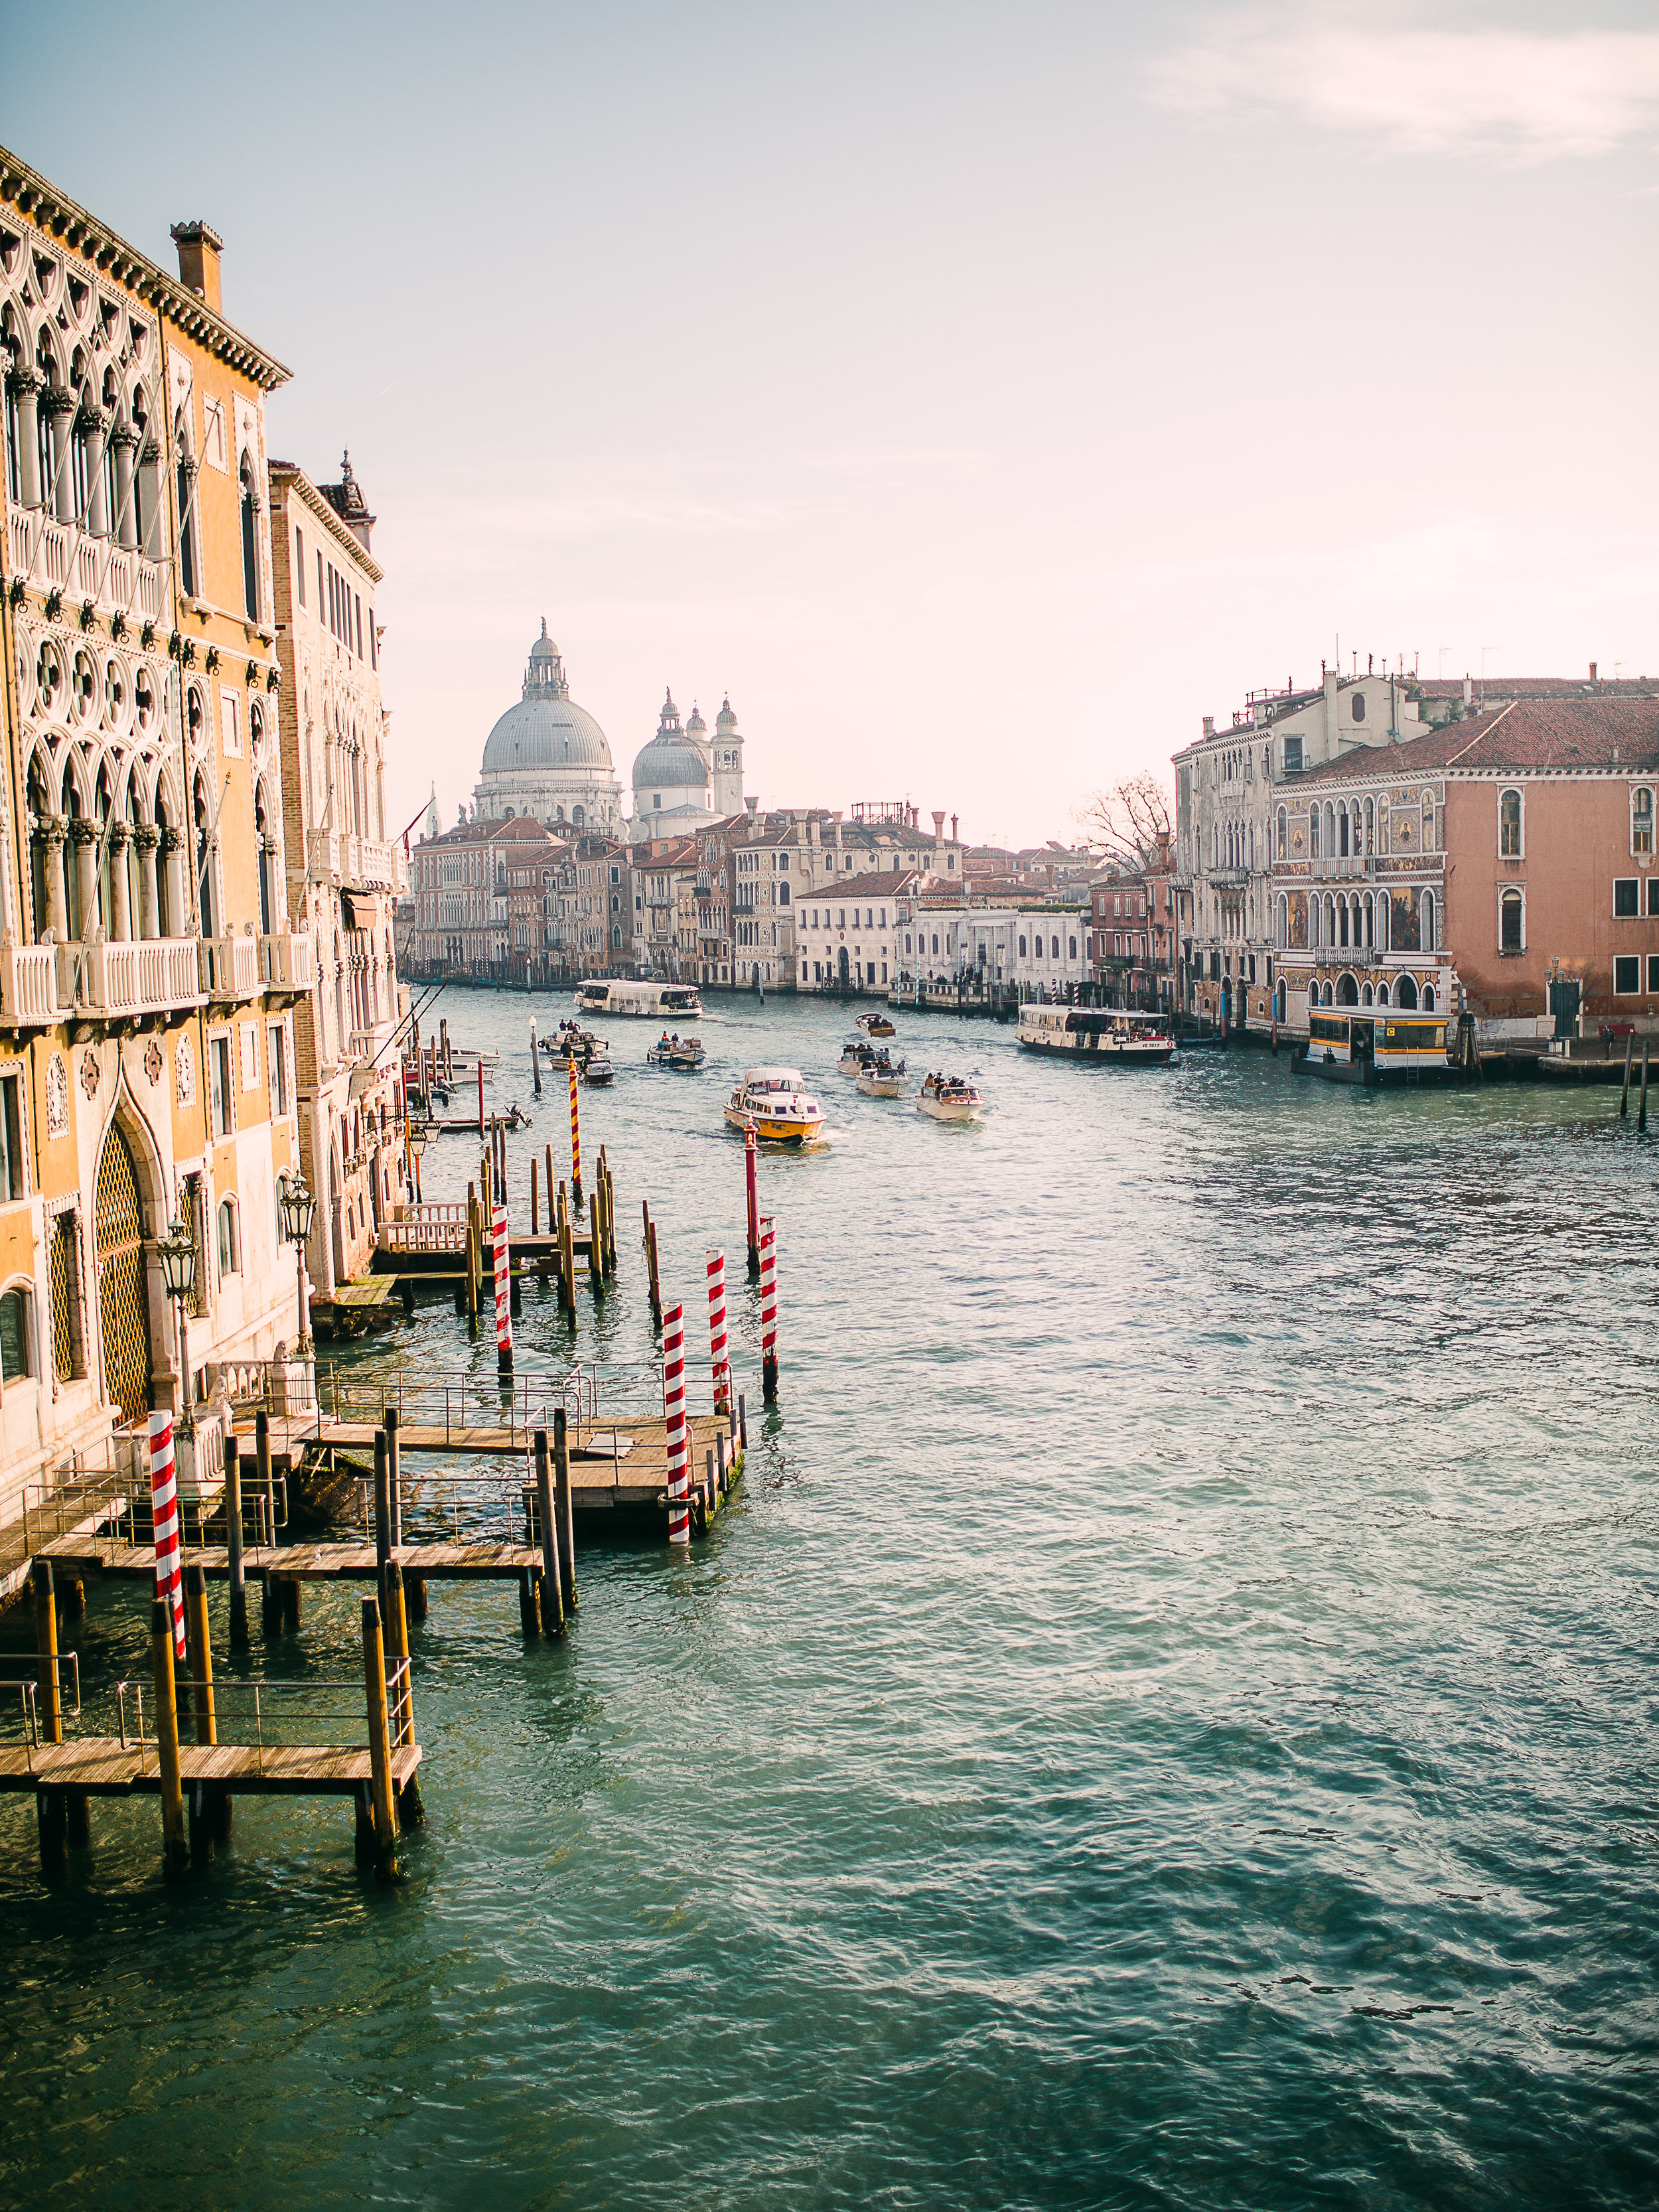 View from Accademia Bridge in Venice